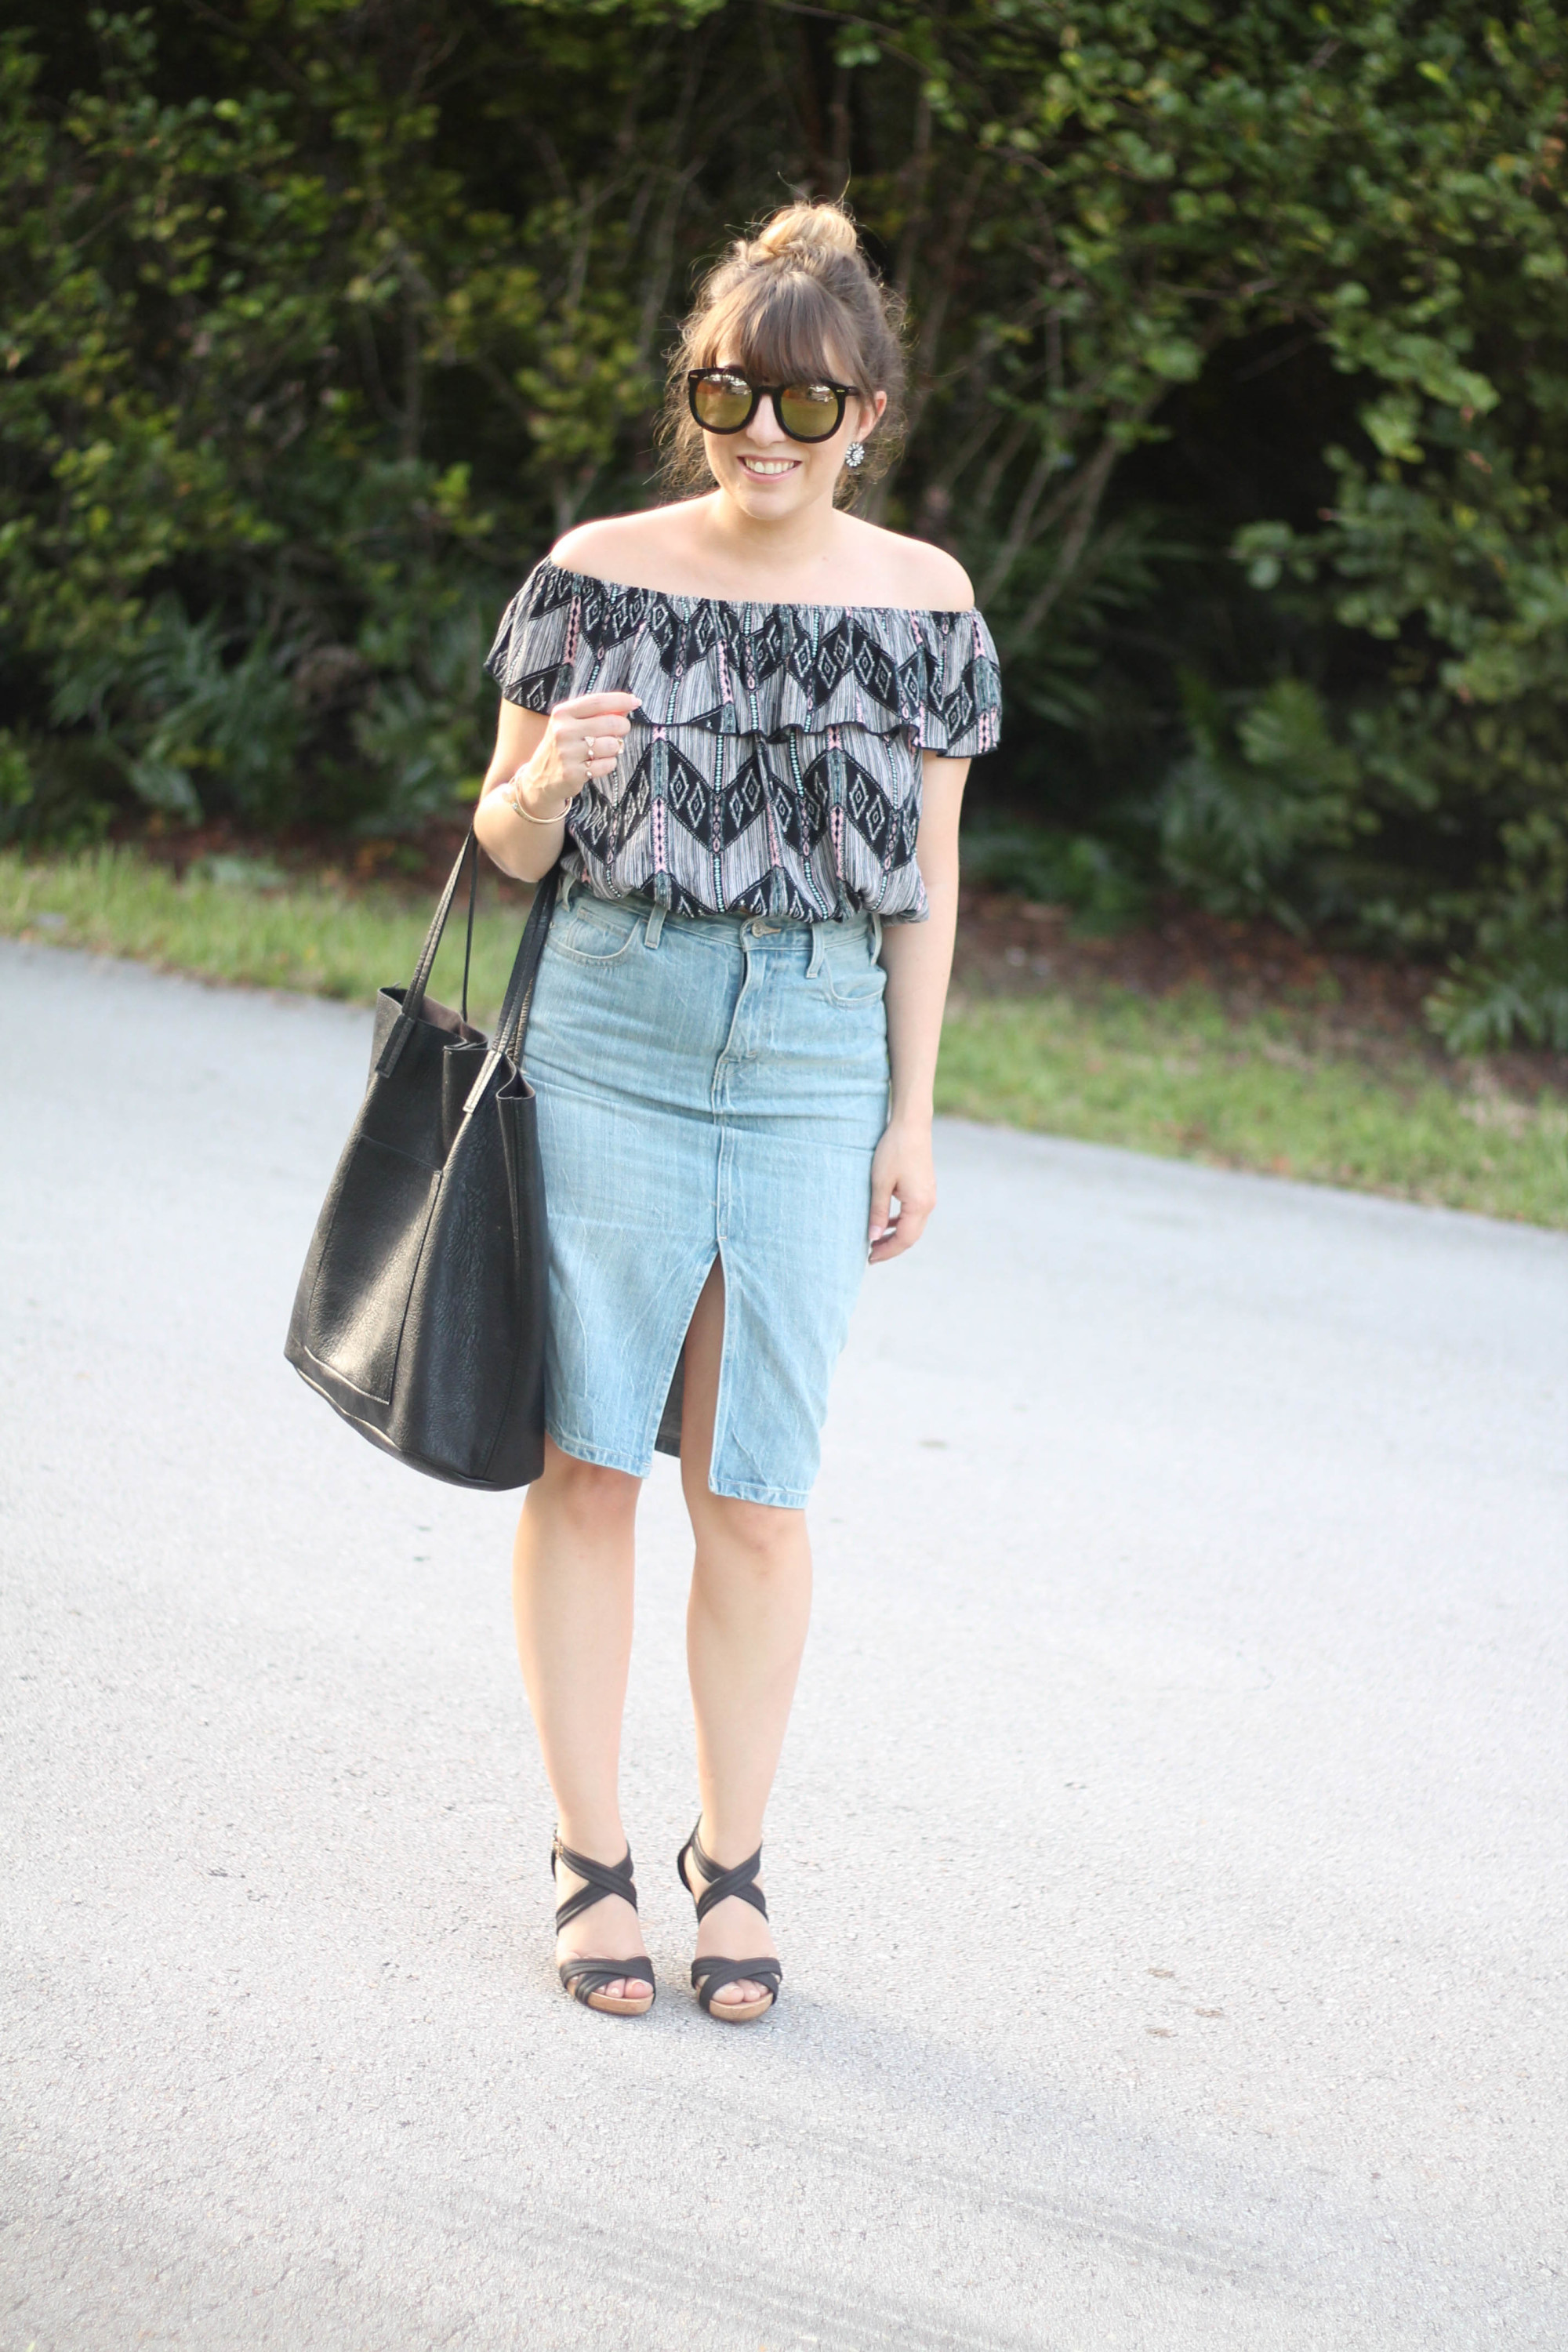 Levi's denim pencil skirt, Kohl's off the shoulder top, karen walker sunglasses from ditto, sole society wedges (4 of 11)